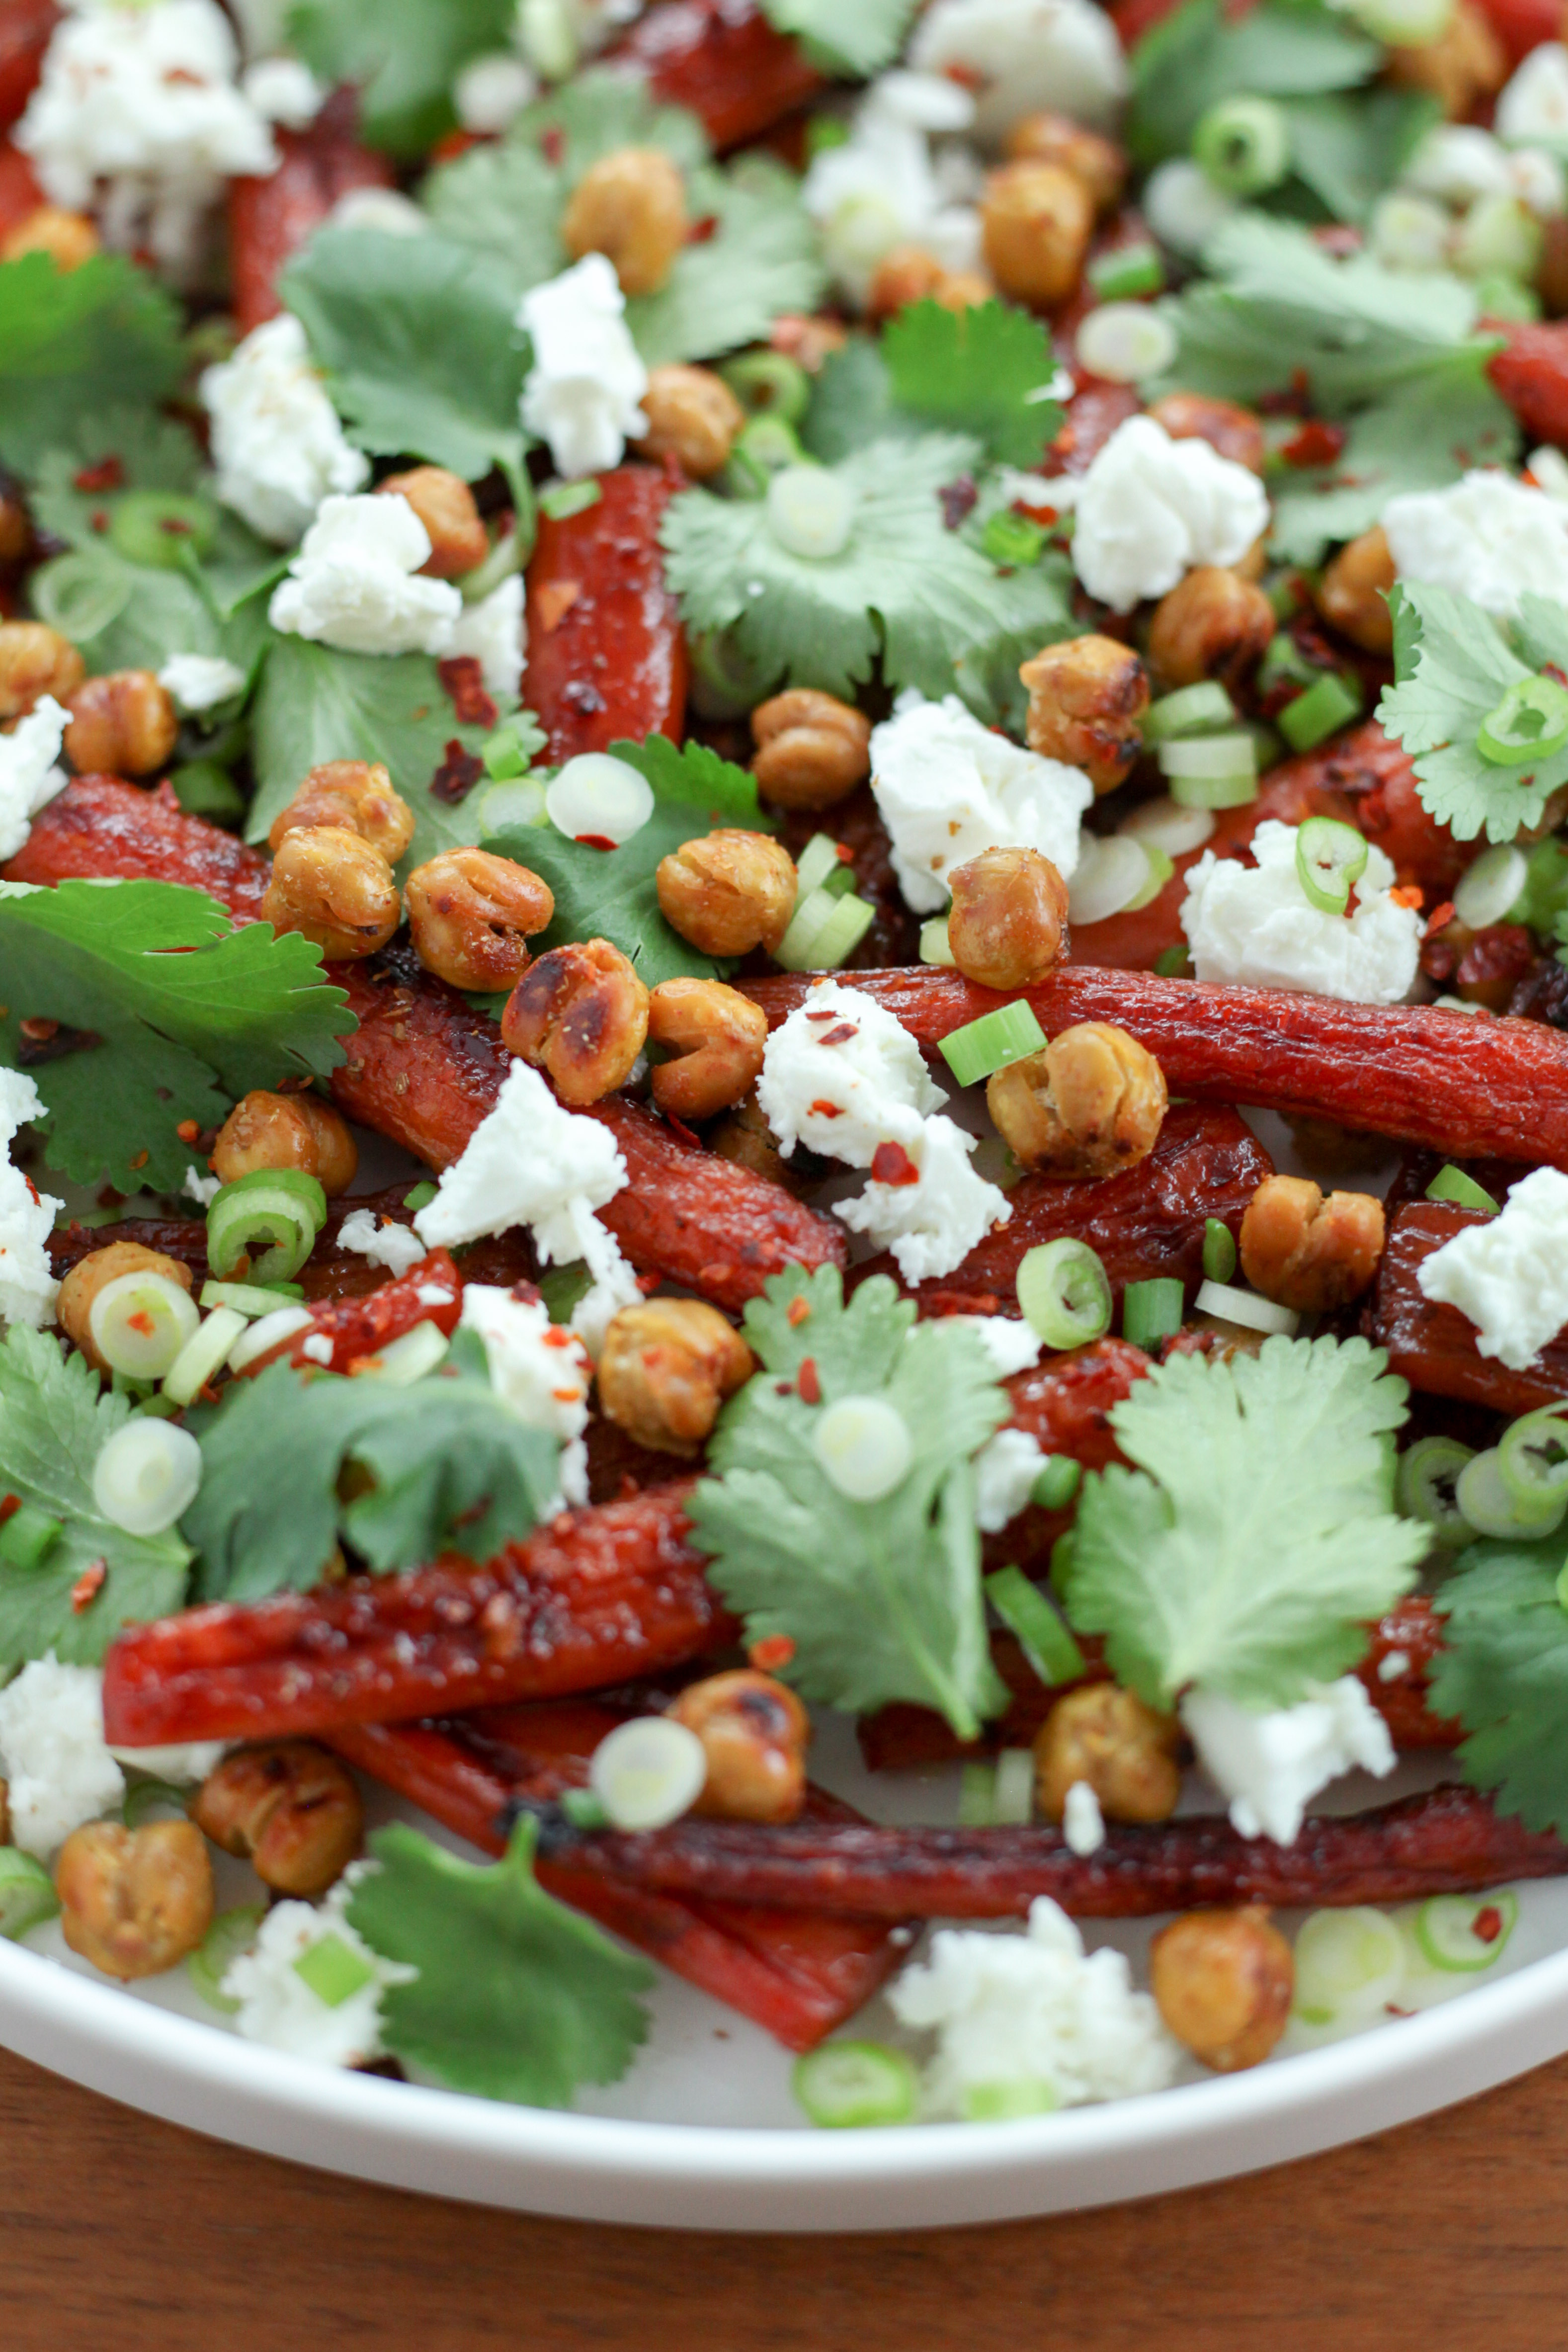 Pomegranate-Molasses-Glazed Carrots With Crispy Chickpeas and Feta | A Modest Feast | @amodestfeast